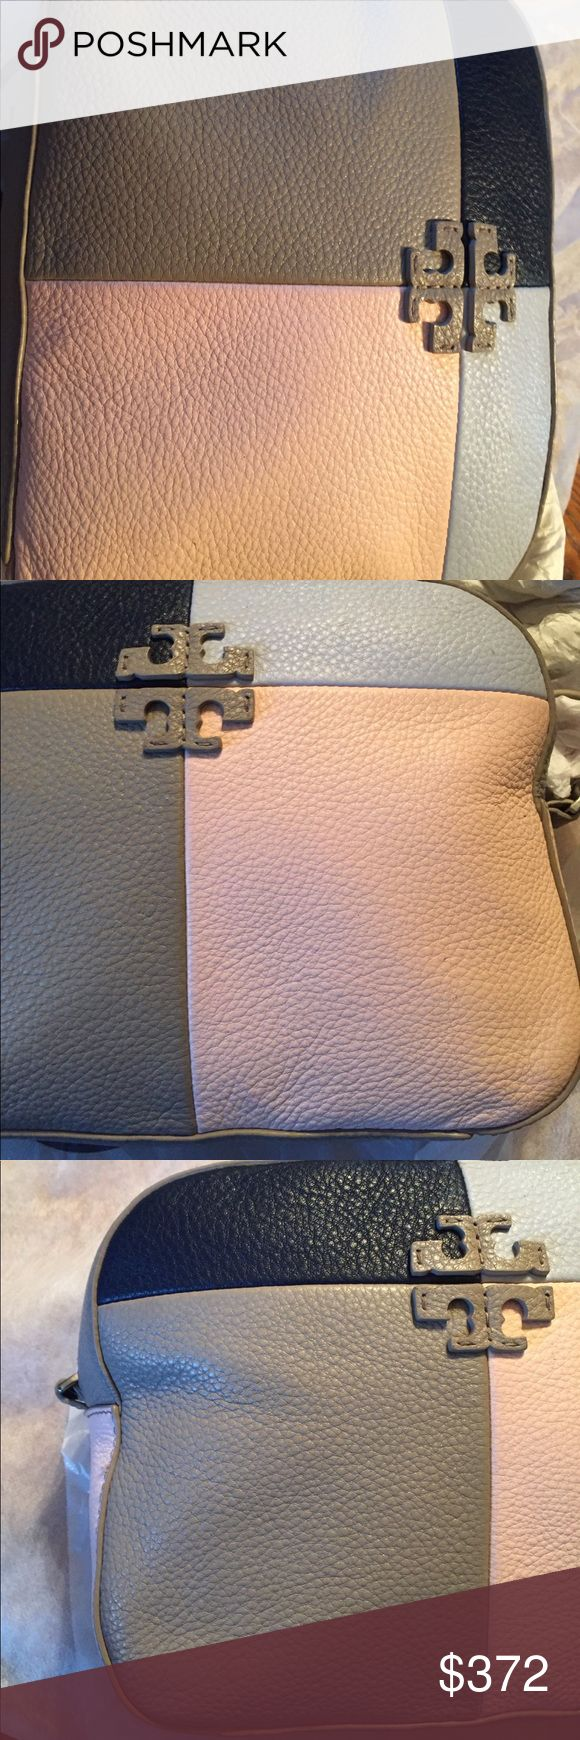 Tory burch Thea camera bag practically new Tory burch Thea bag great fun crossbody adjustable strap et removable tassels selling for my cousin holds an iPhone agenda roller ball makeup bag has interior zipped pocket pebble leather blue grey salmon and tan gorgeous colors this was the local Bloomingdales store sample no damage rips tears stains etc in perfect condition selling price final  no offers/trade pls color French gray multi silver original price at Bloomingdales was $475  I purchased…